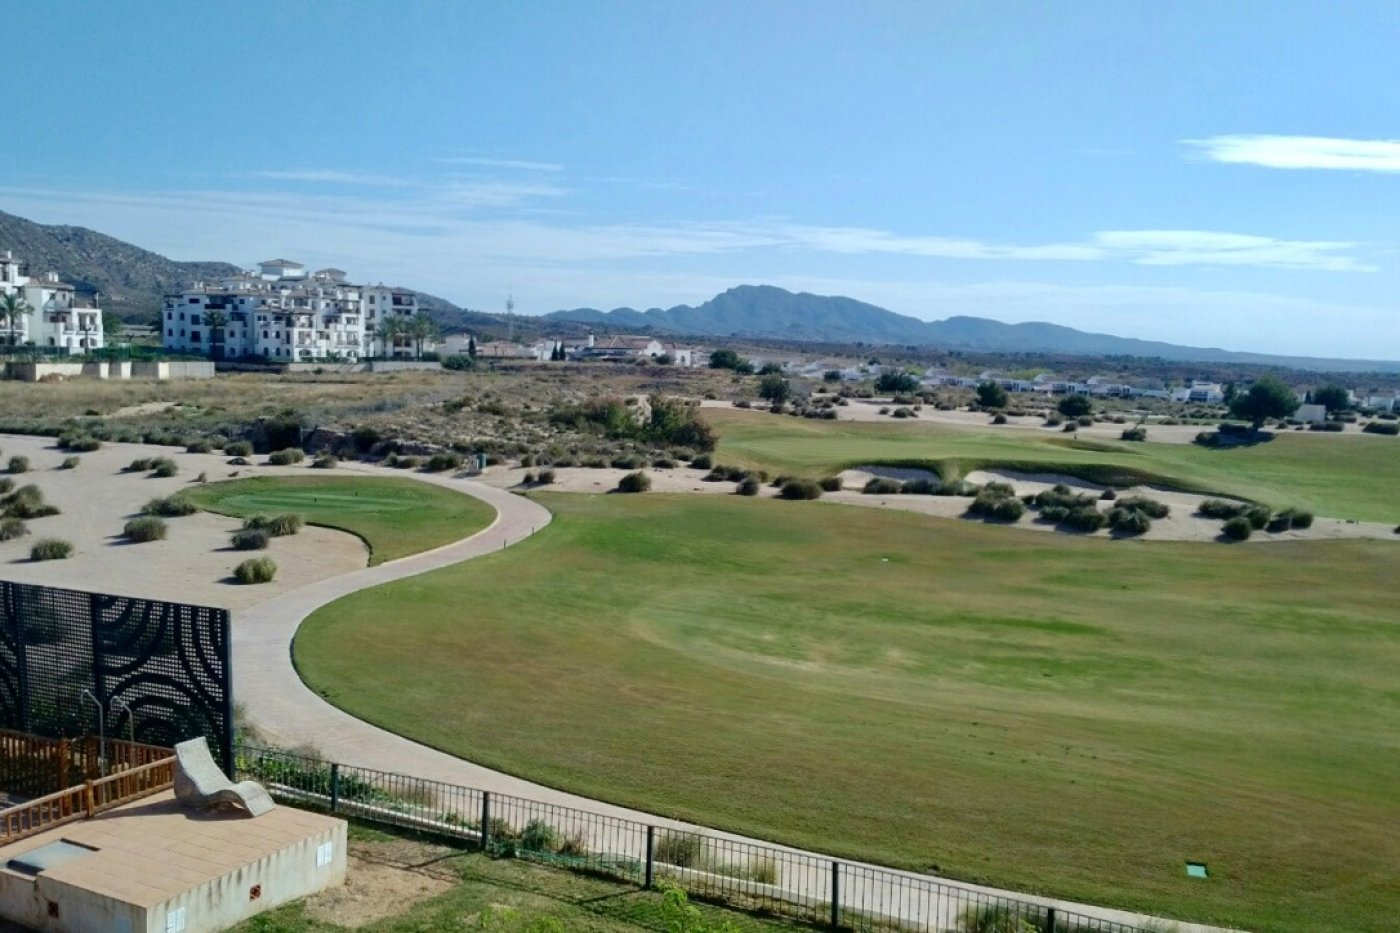 Image 2 Apartment ref 3265-02805 for sale in El Valle Golf Resort Spain - Quality Homes Costa Cálida